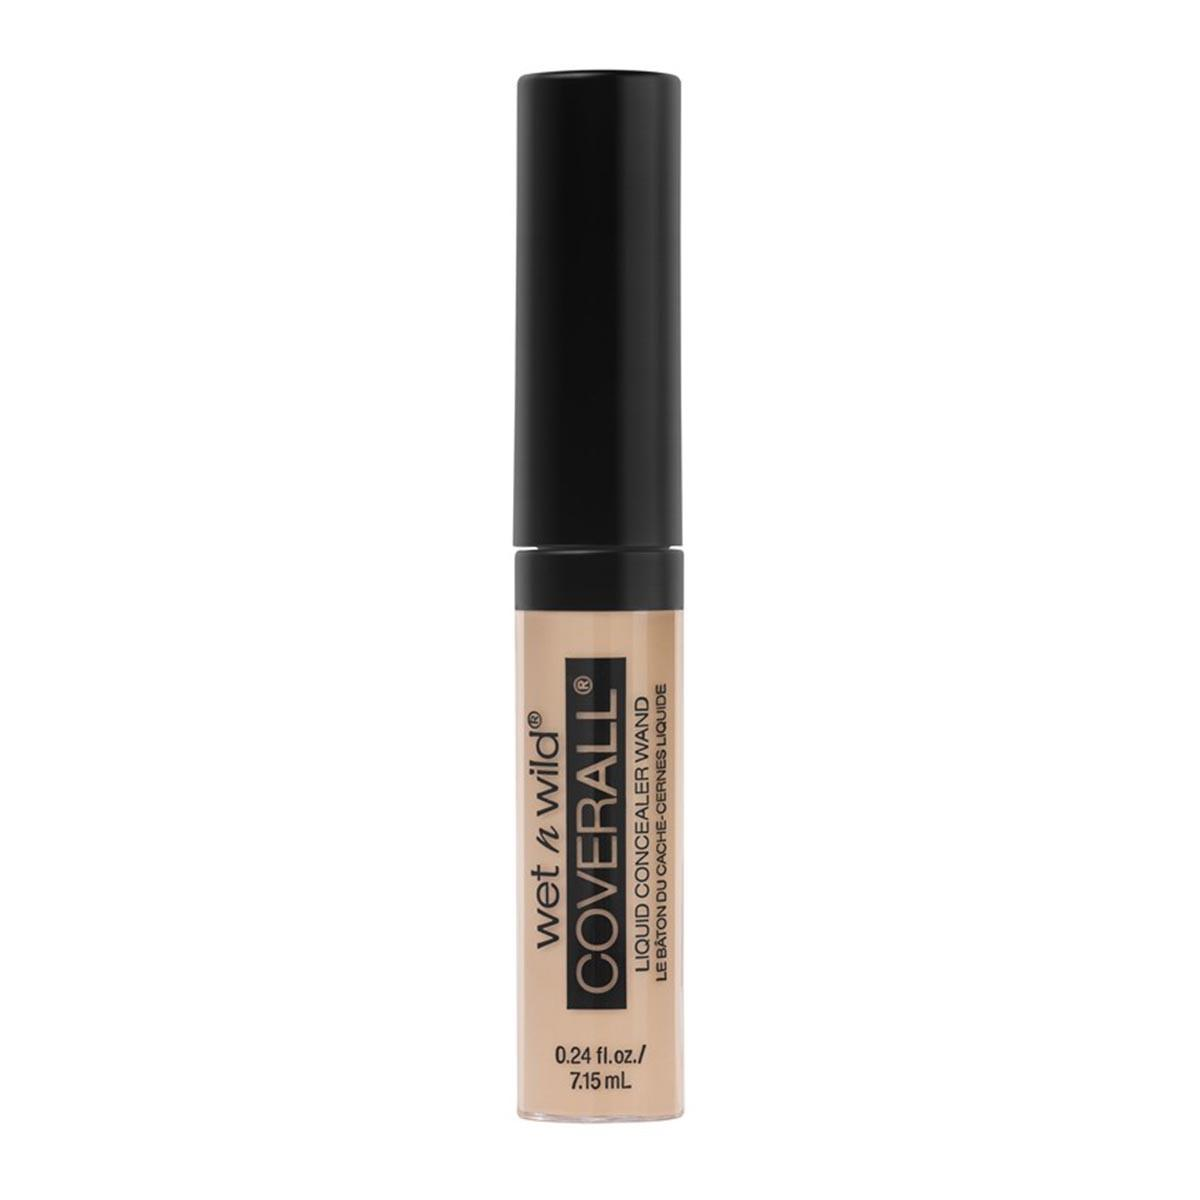 Wet n wild Coverall Liquid Concealer Wand Light